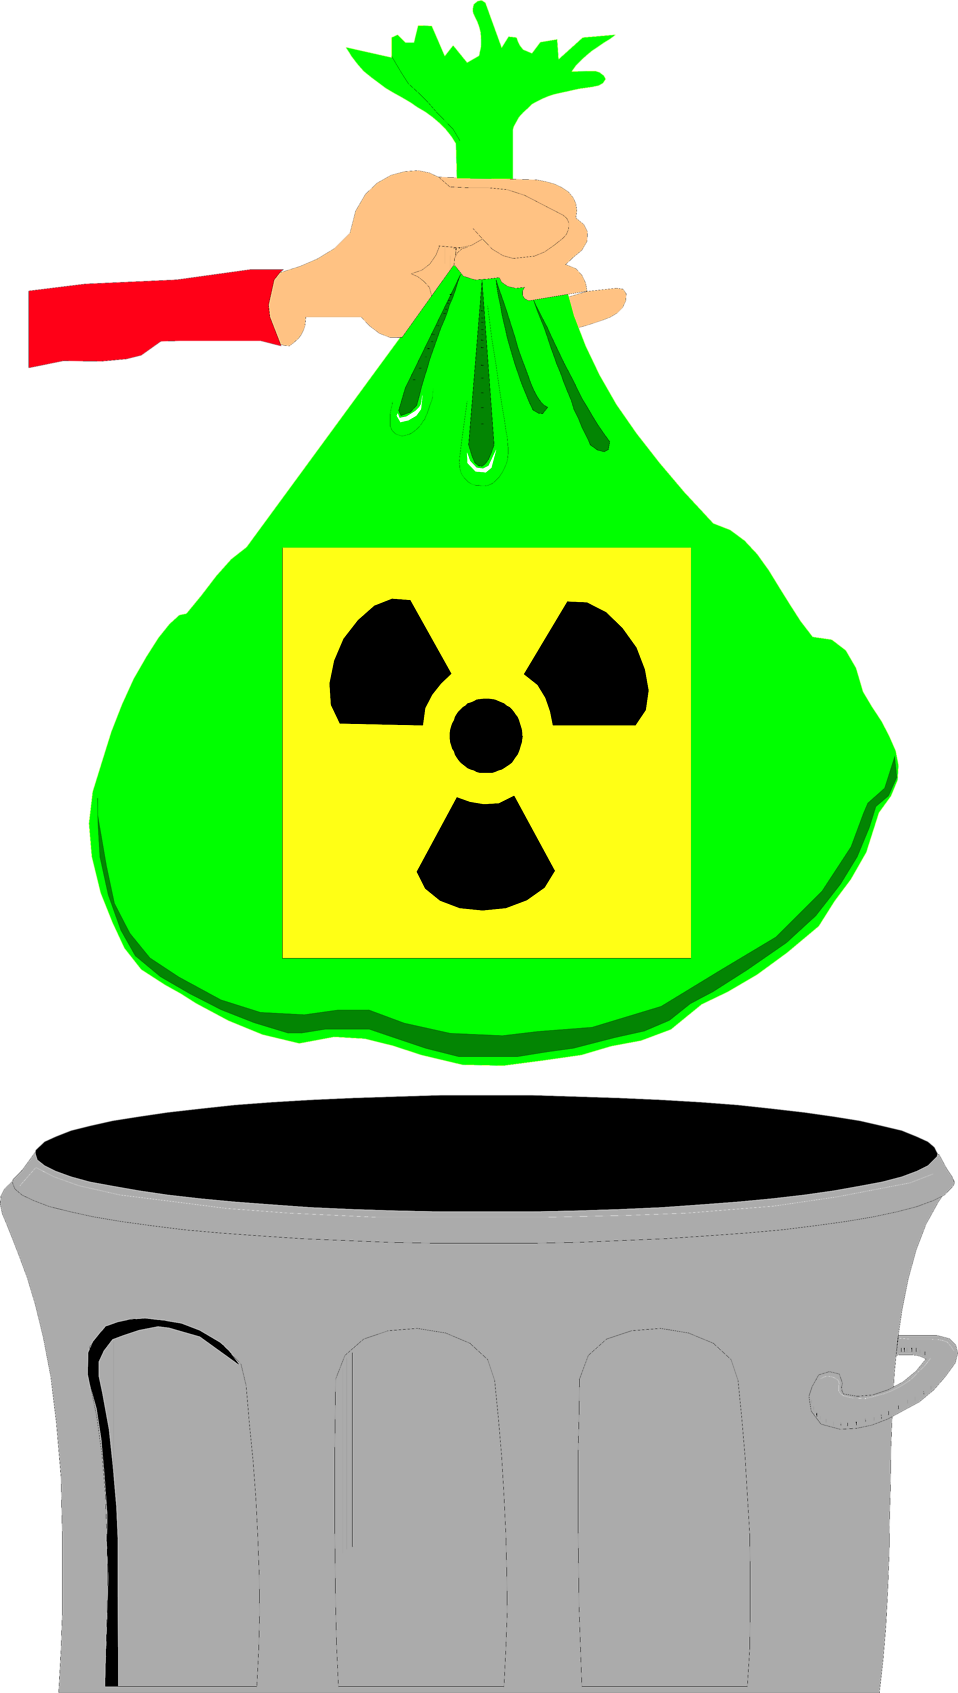 Luggage clipart animated. Hazardous waste toxic clip